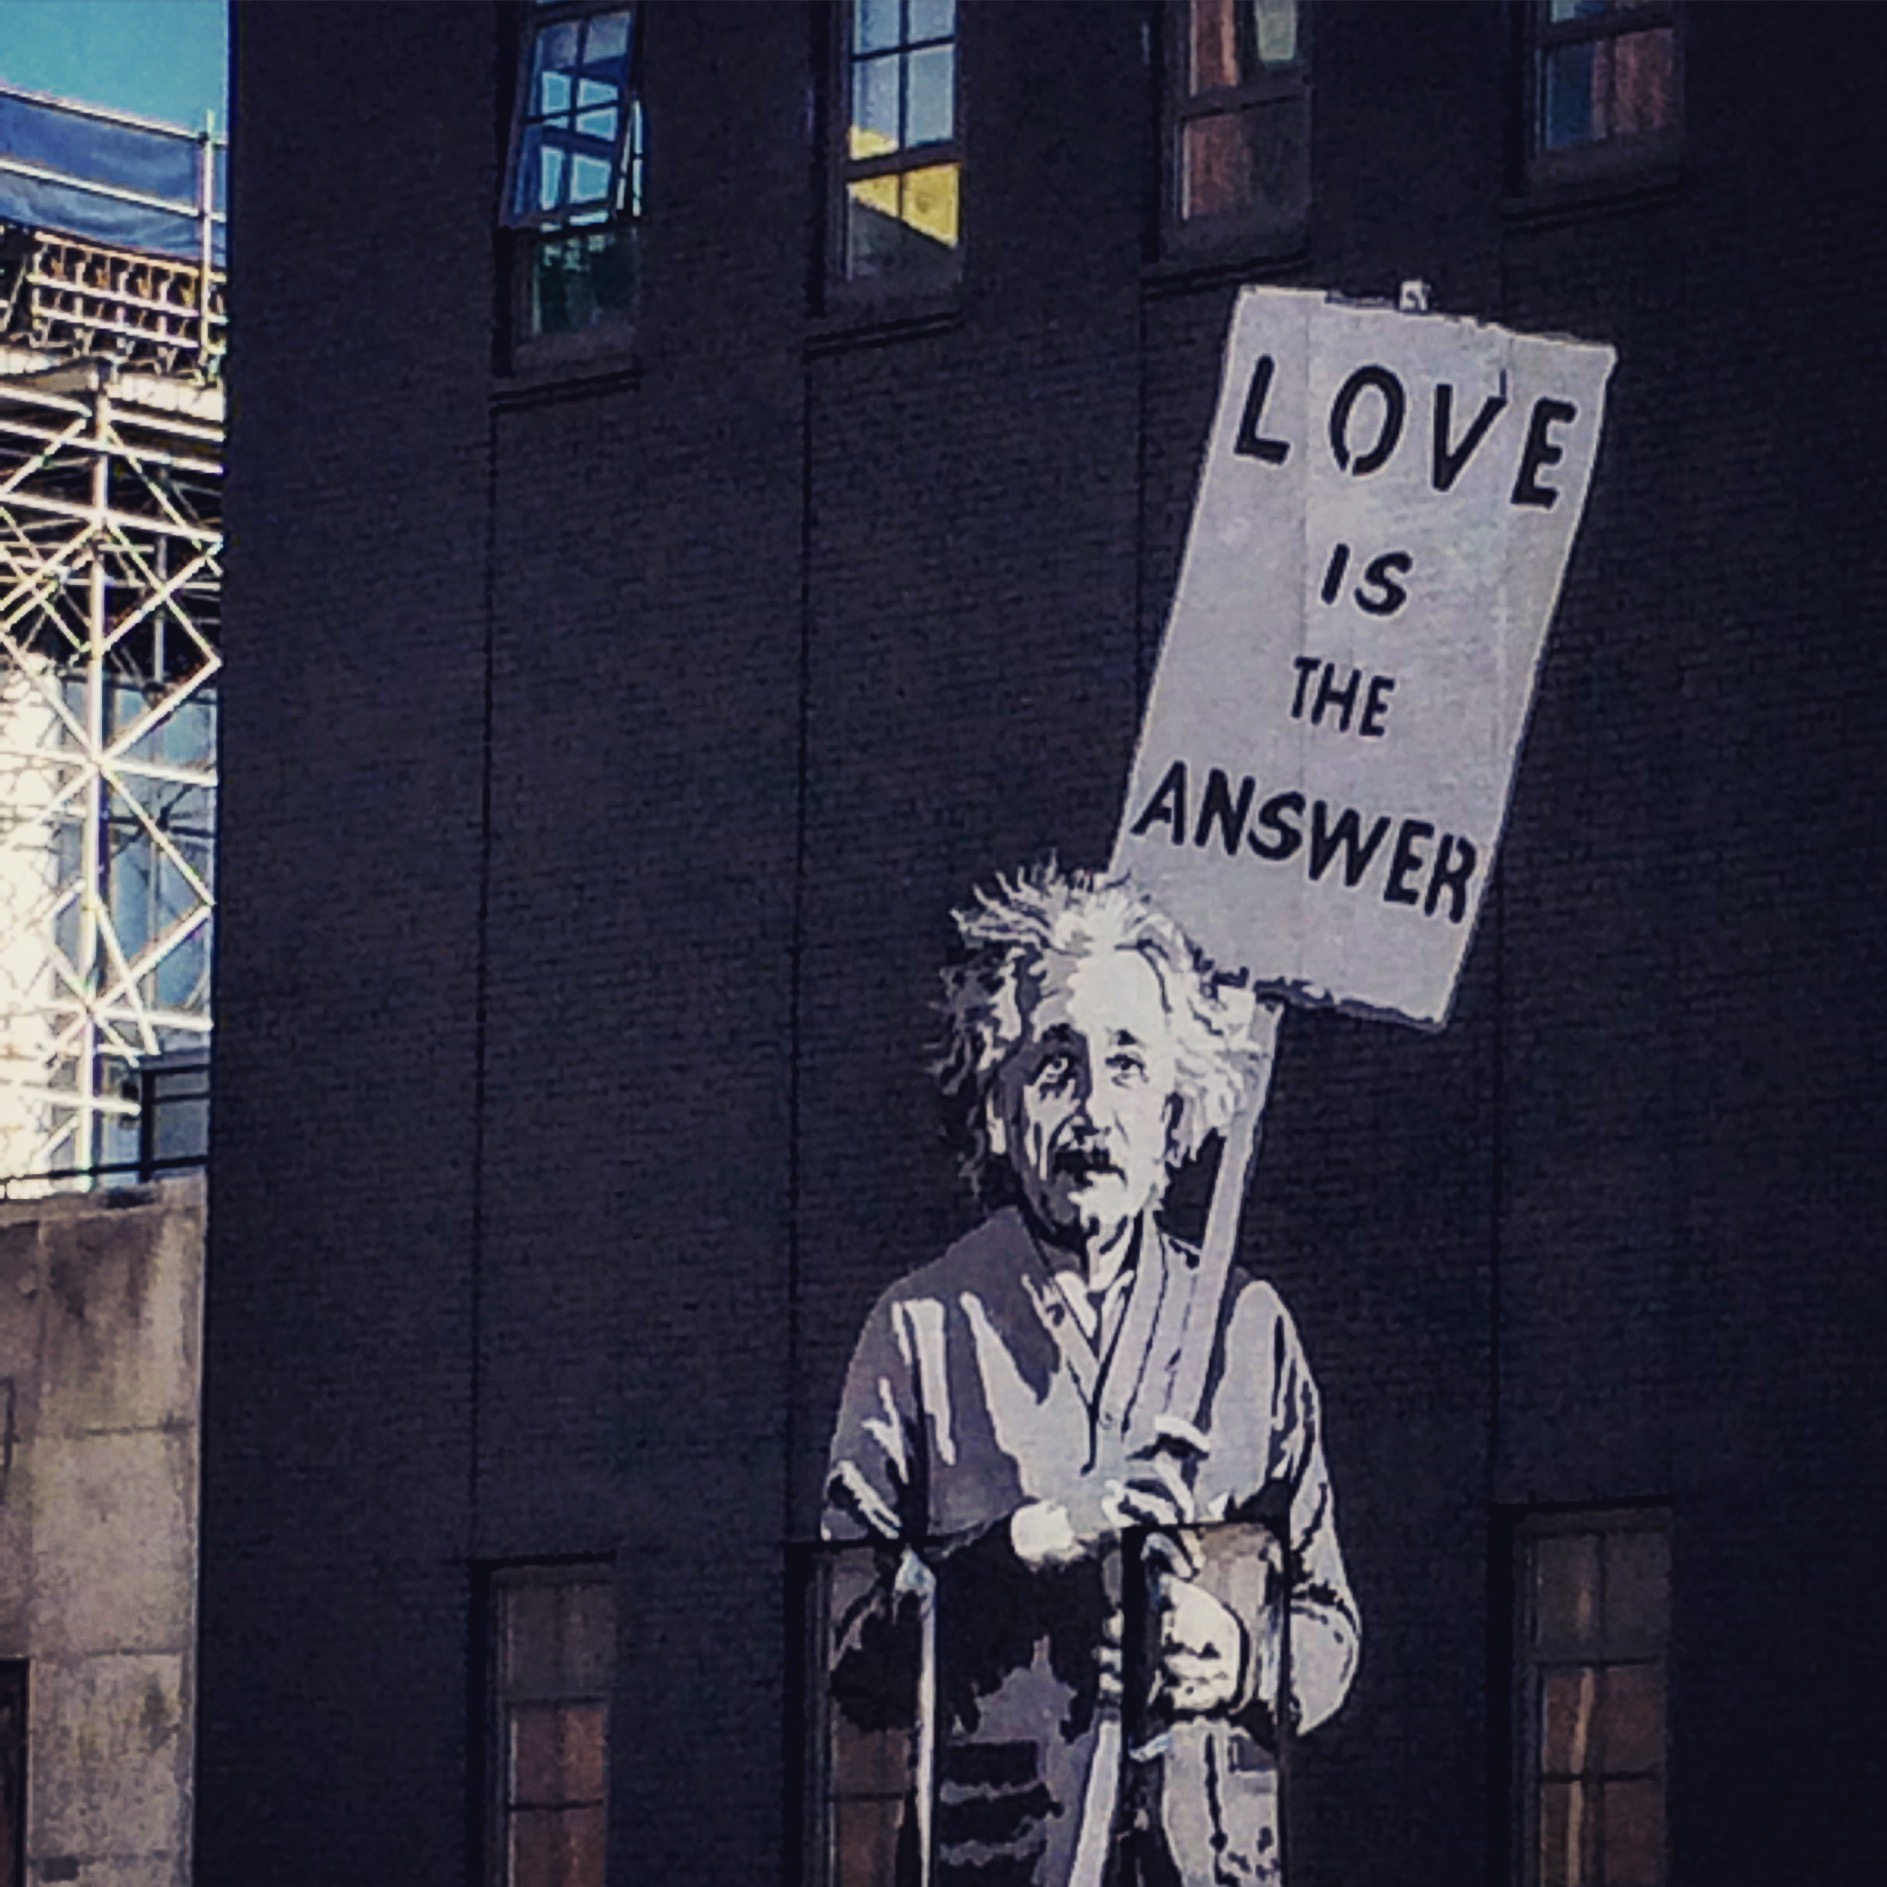 Art by Mr. Brainwash